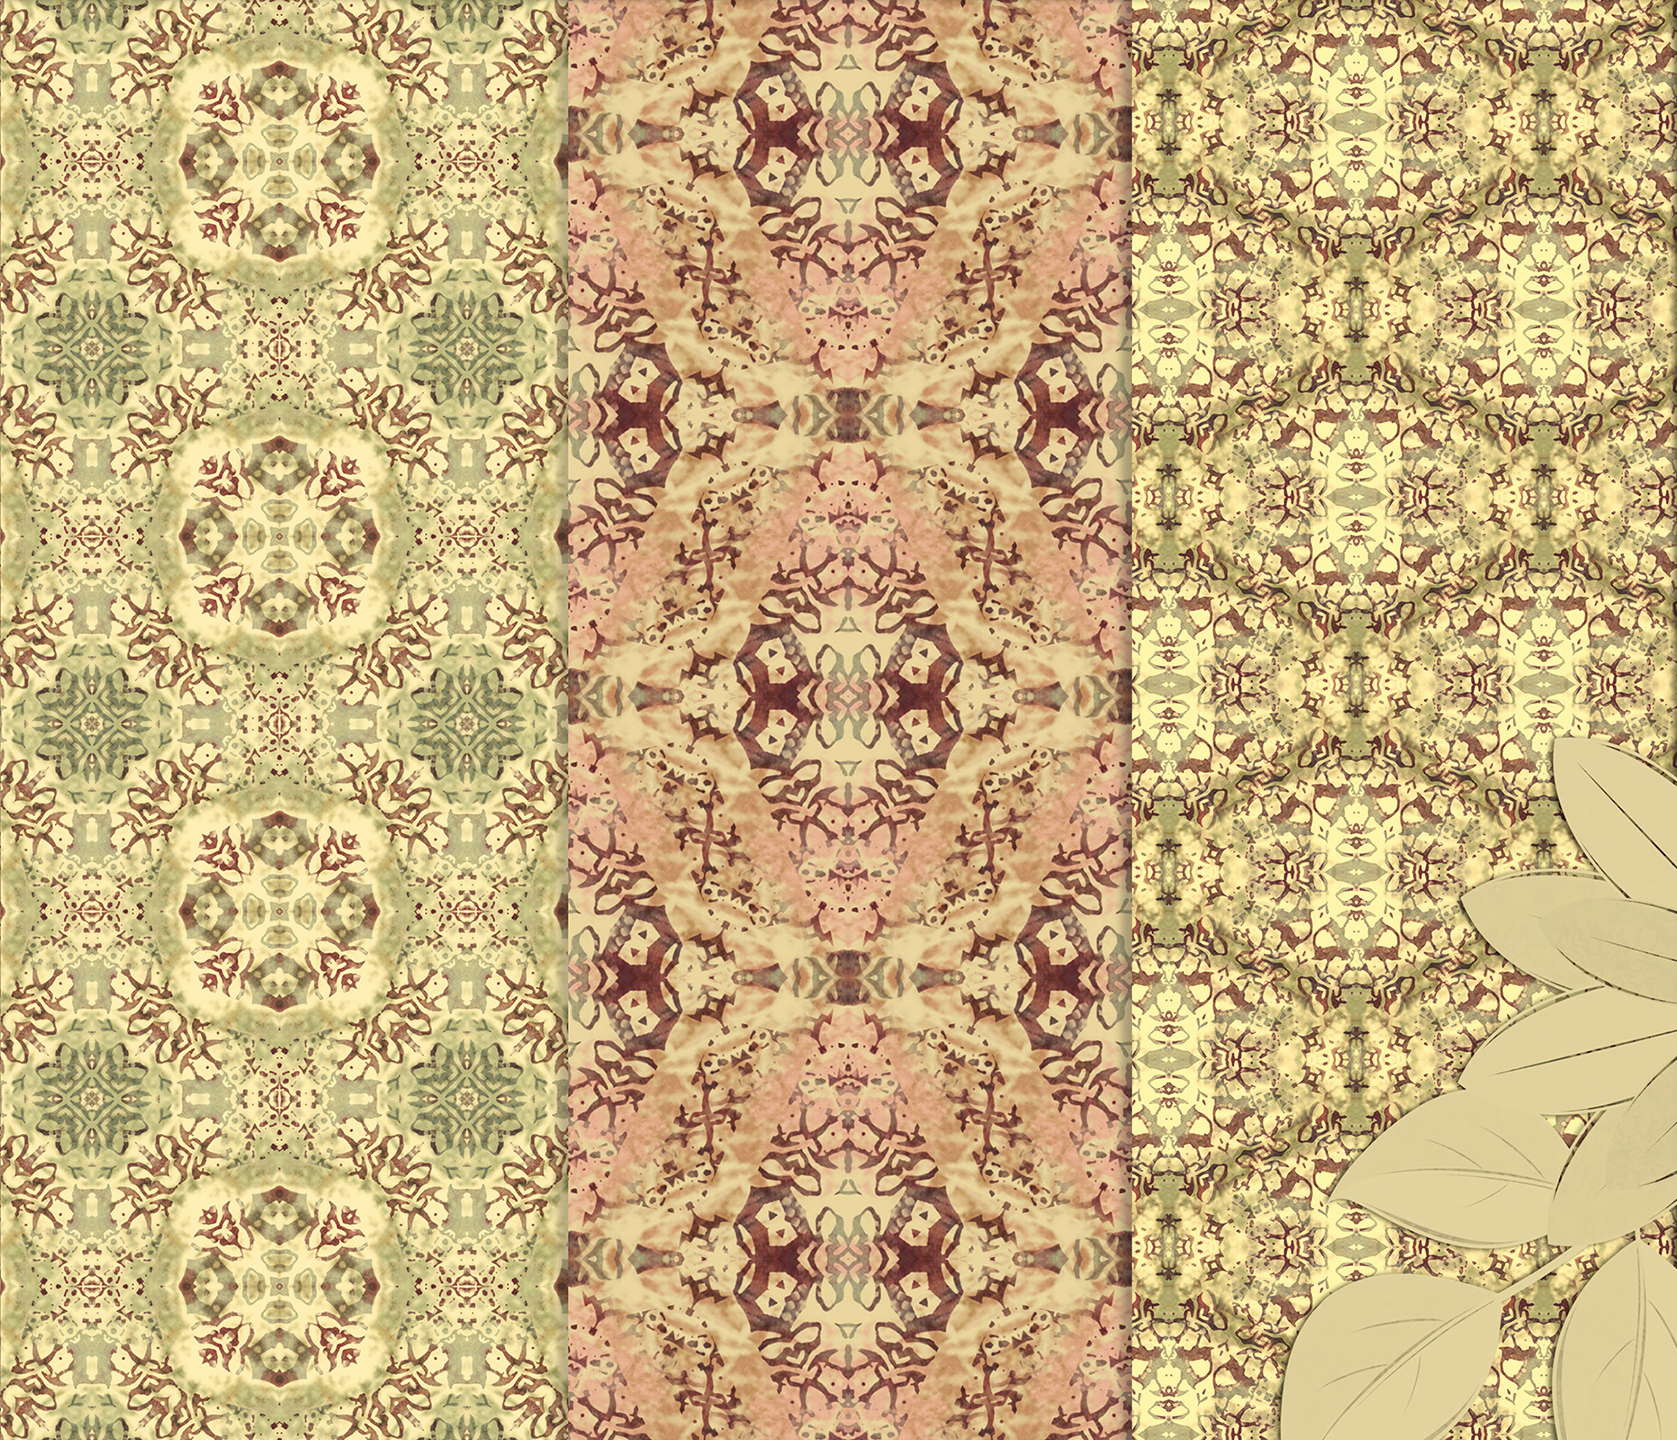 Vintage Abstract Patterns, Digital Scrapbook Paper example image 5